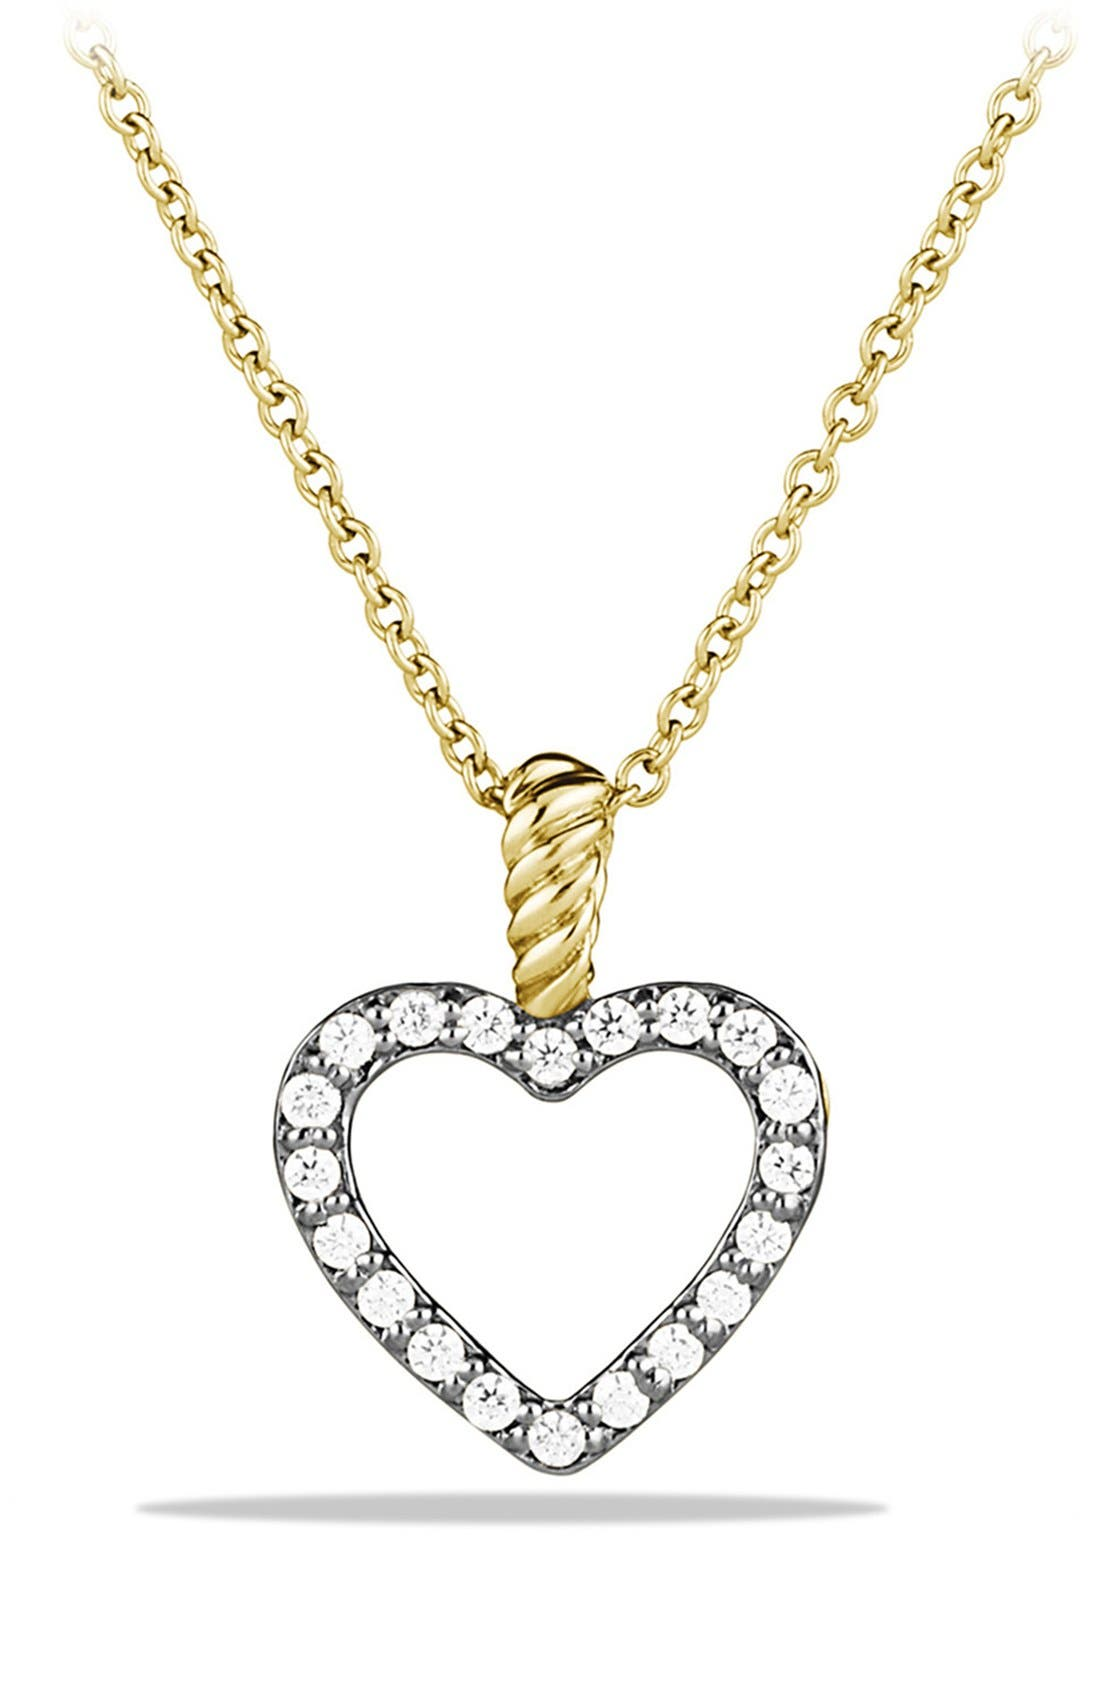 Main Image - David Yurman 'Cable Collectibles' Heart Pendant with Diamonds on Chain